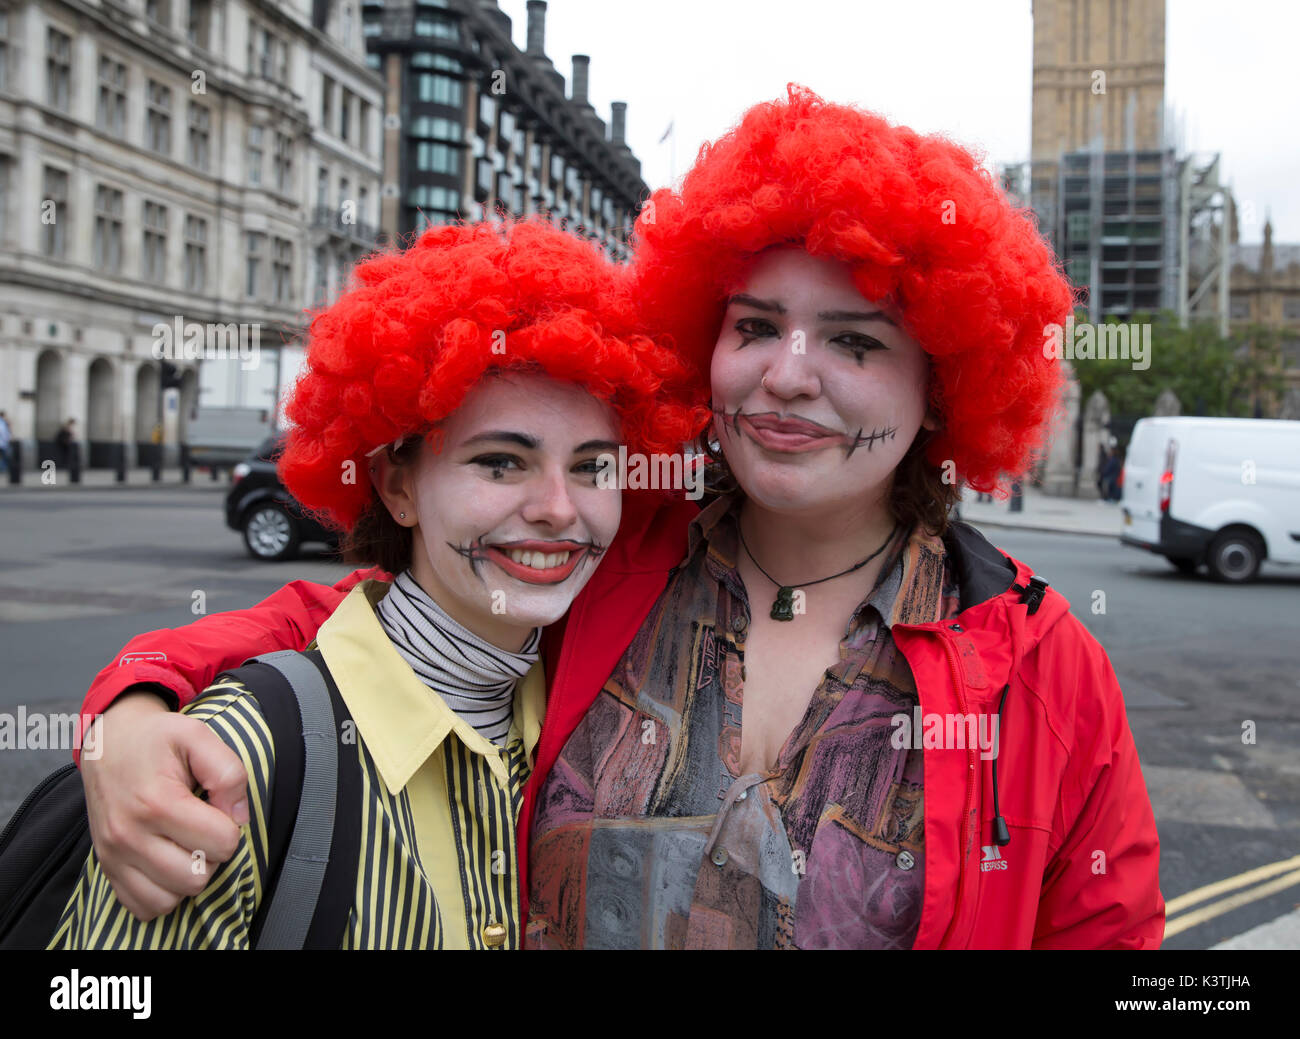 London, UK. 4th Sep, 2017. McDonald's Staff strike for very first time since stores opened in 1974. Workers from Crayford and Victoria StreetÊare demanding £10 an hour starting salary and more secure working hours in response to McDonald's using zero-hour contracts. Credit: Keith Larby/Alamy Live News - Stock Image